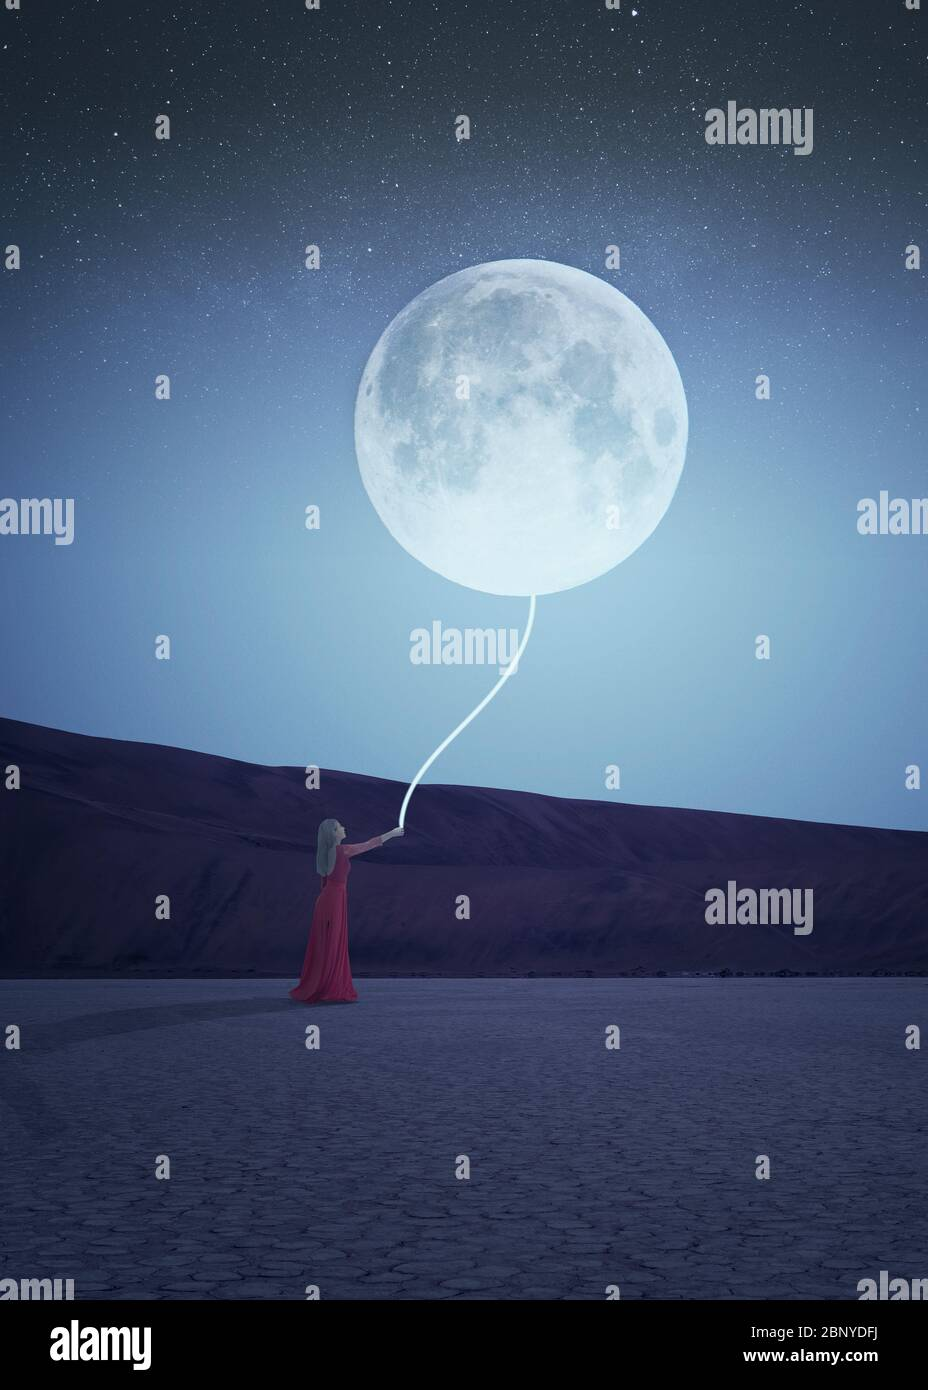 Night scene of a woman in red dress holding a glowing rope attached to a moon in the sky. Fantasy Stock Photo